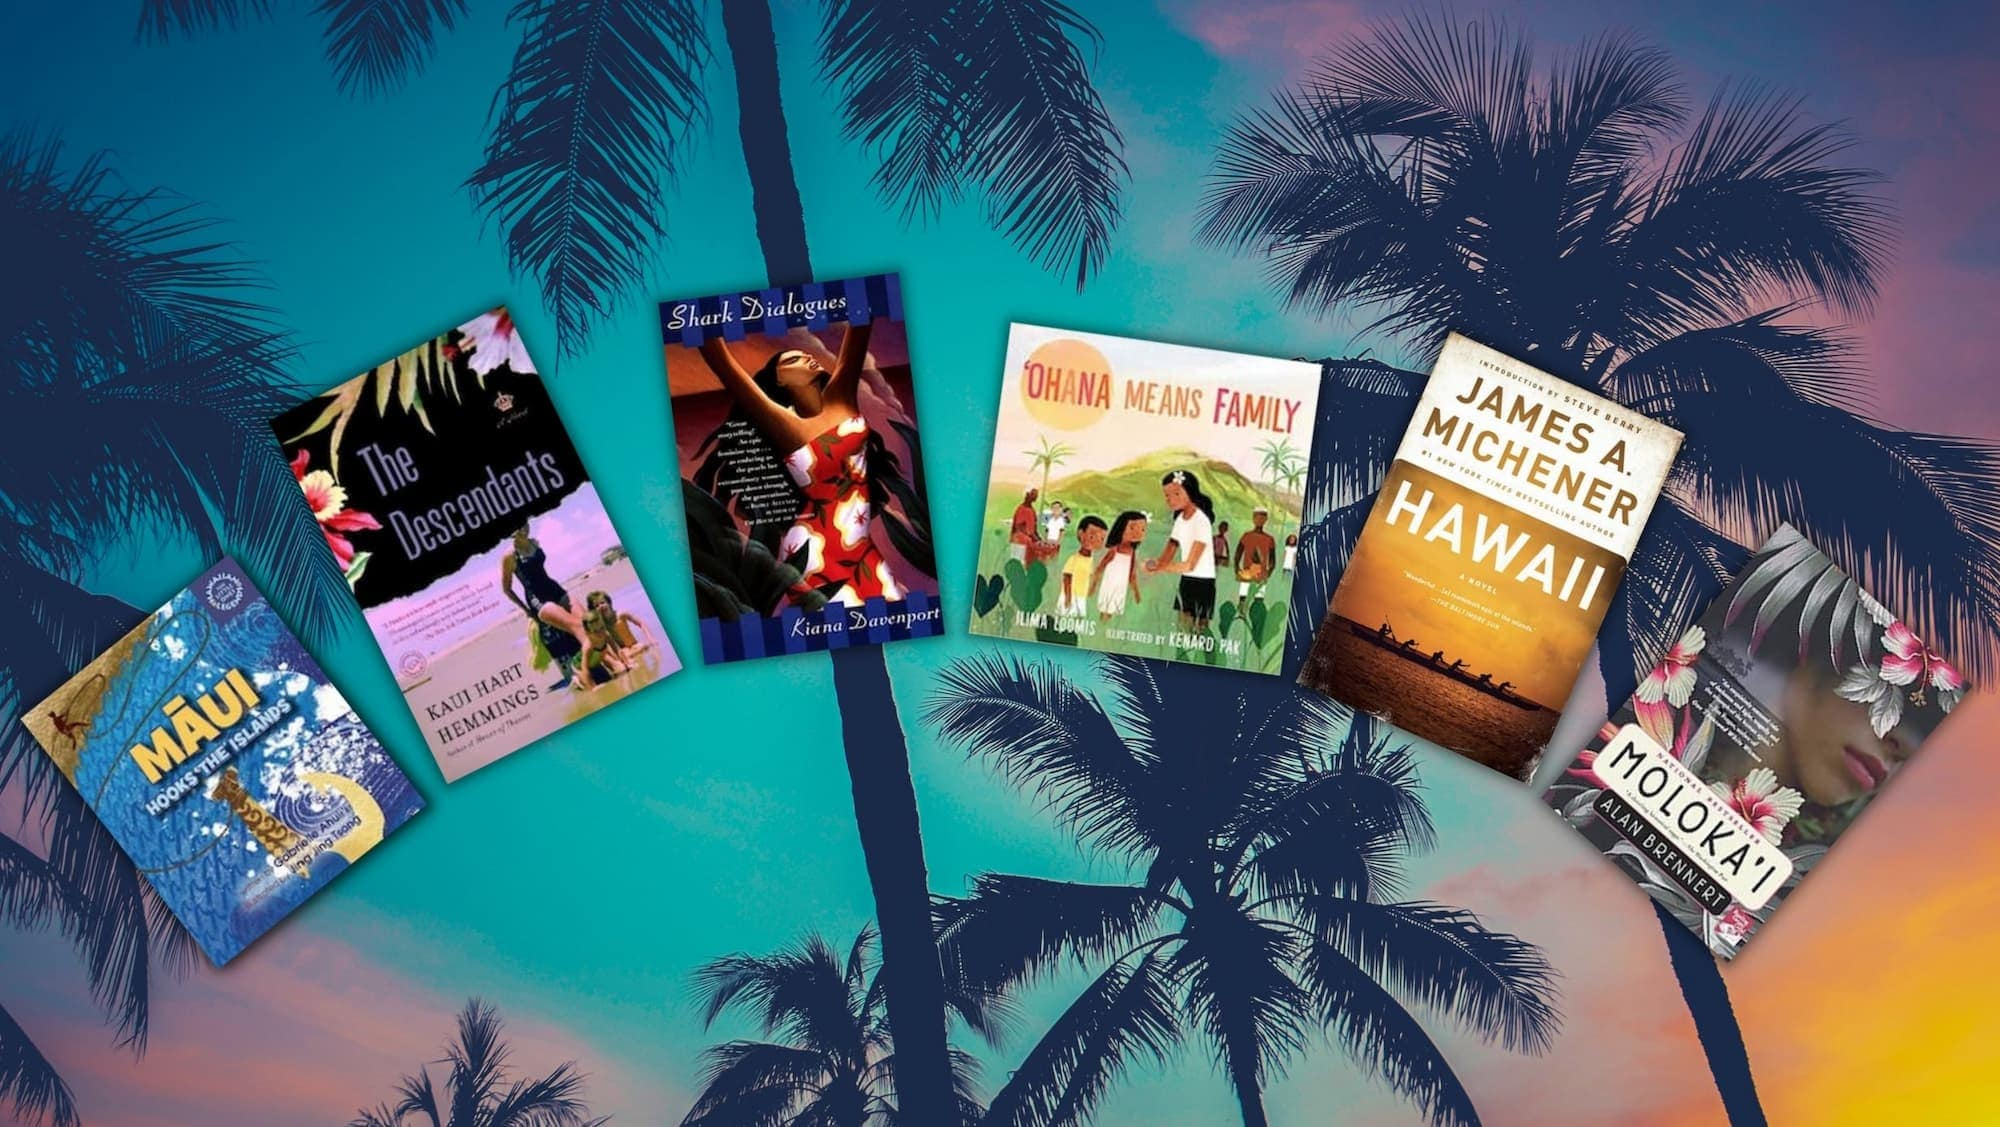 17 Books to read for your trip to Hawaiʻi